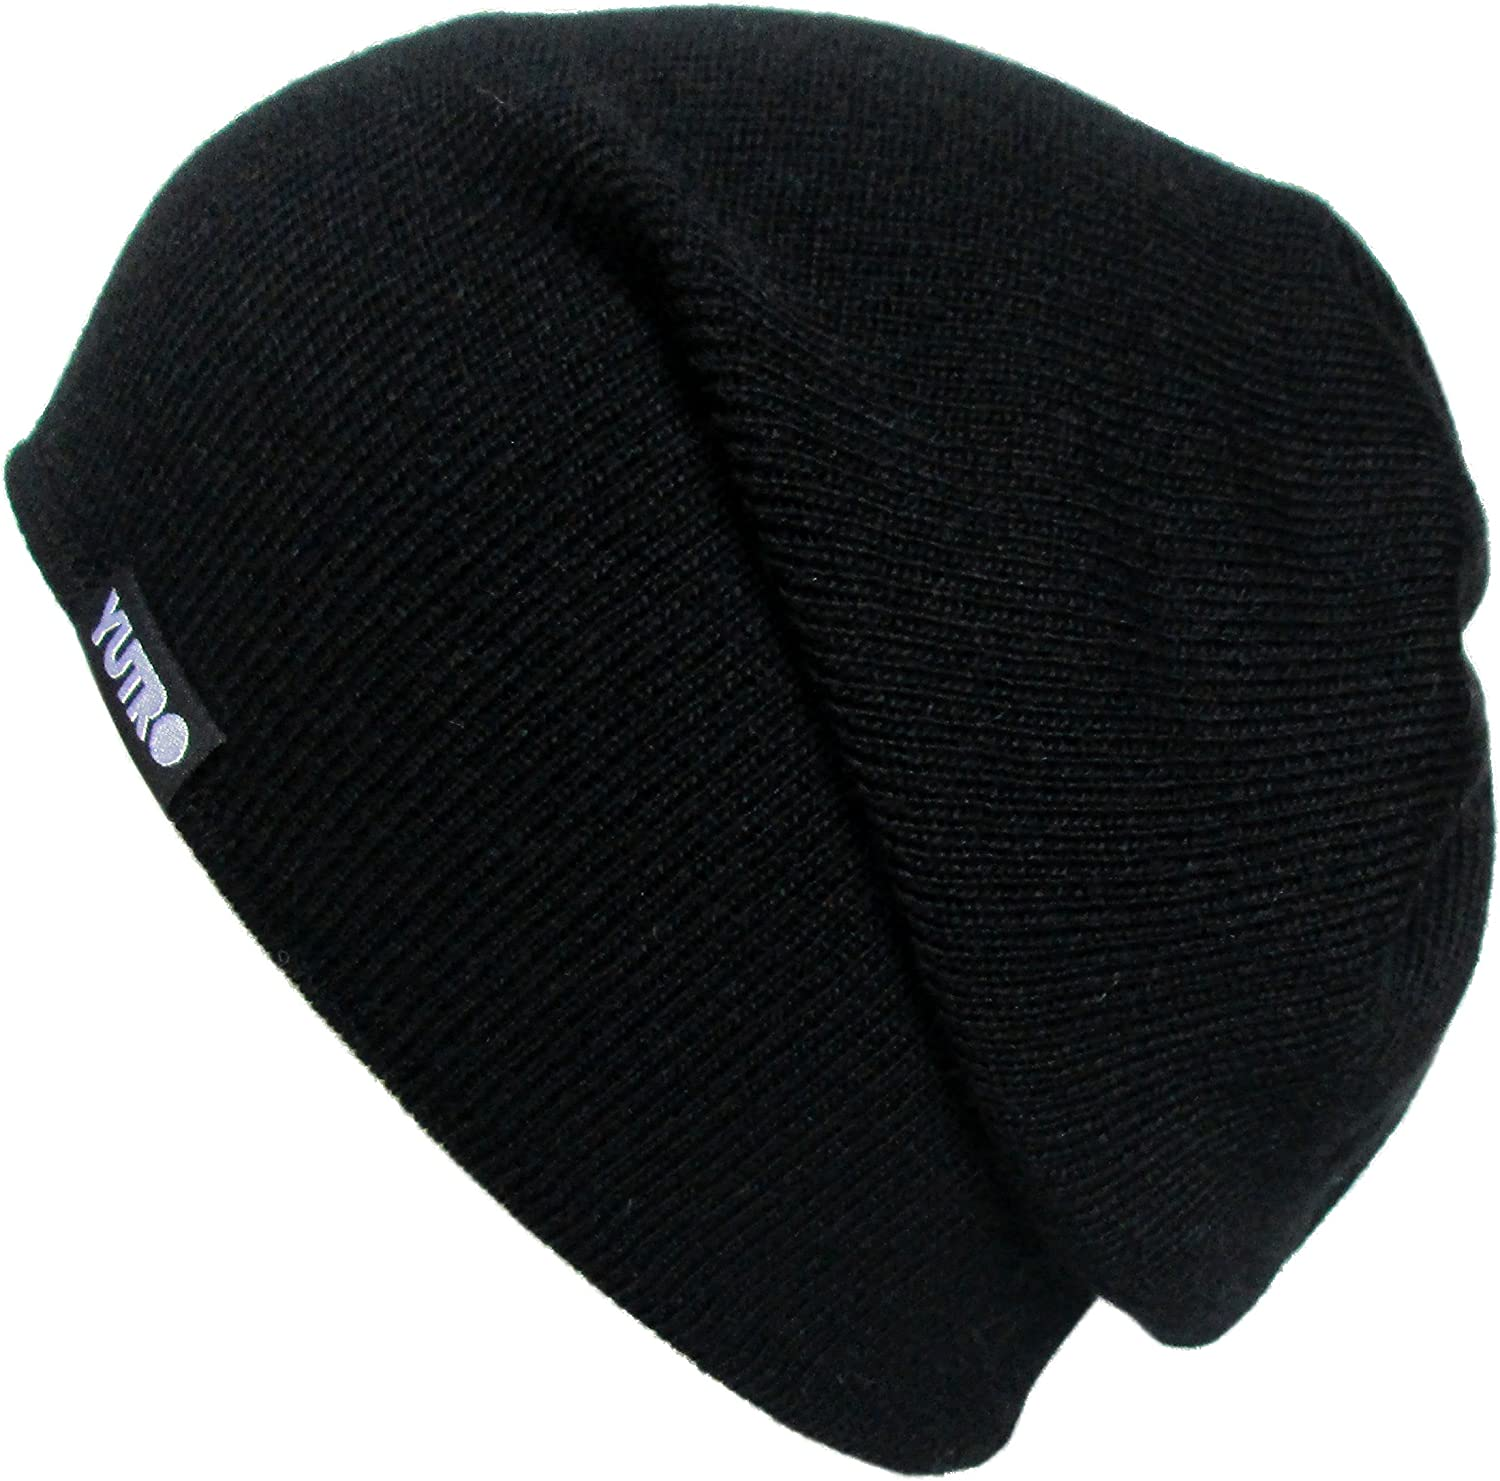 YUTRO Wool Knitted Light Weight Classic Winter Sports Beanie hat